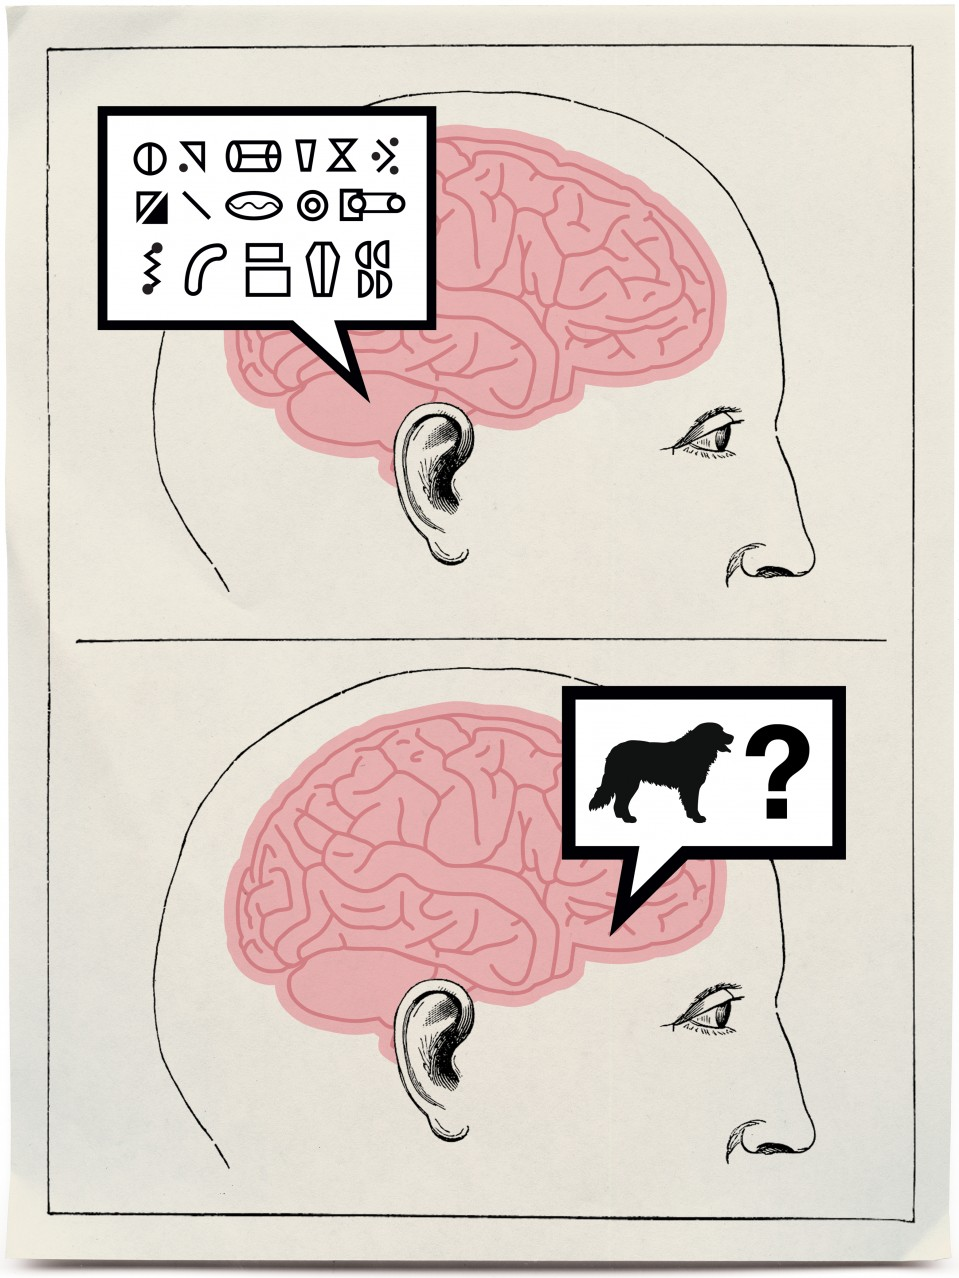 Cracking the Brain's Codes - MIT Technology Review